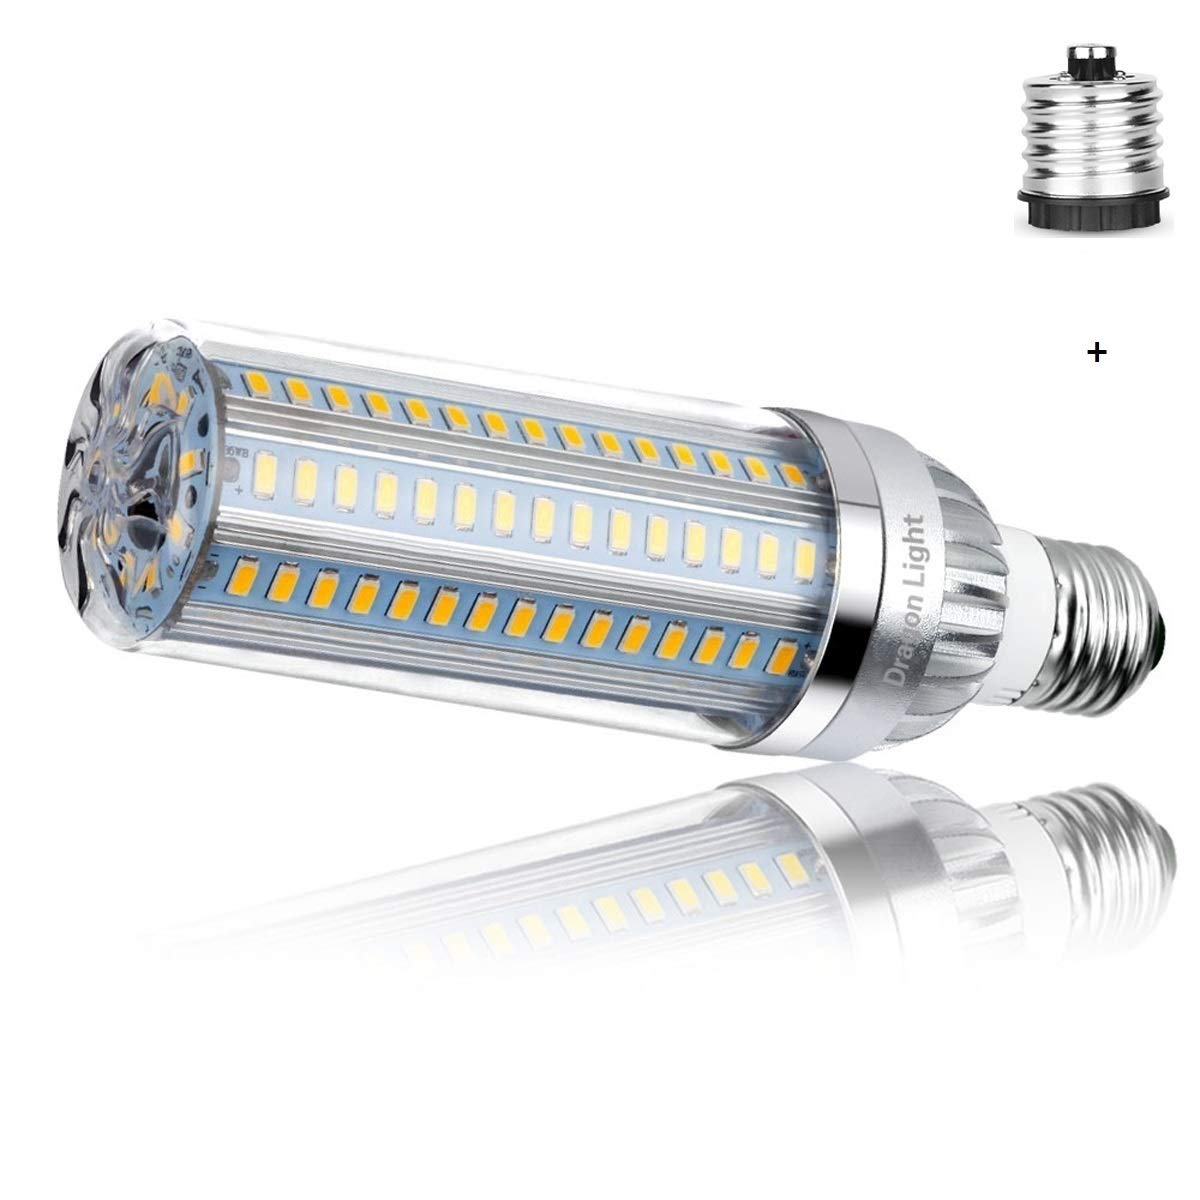 25W Super Bright Corn LED Light Bulb(250 Watt Equivalent) - 3000K Warm White 2900Lumens - E26 with E39 Mogul Base Adapter for Large Area Commercial Ceiling Light - Garage Warehouse Porch Backyard by DragonLight